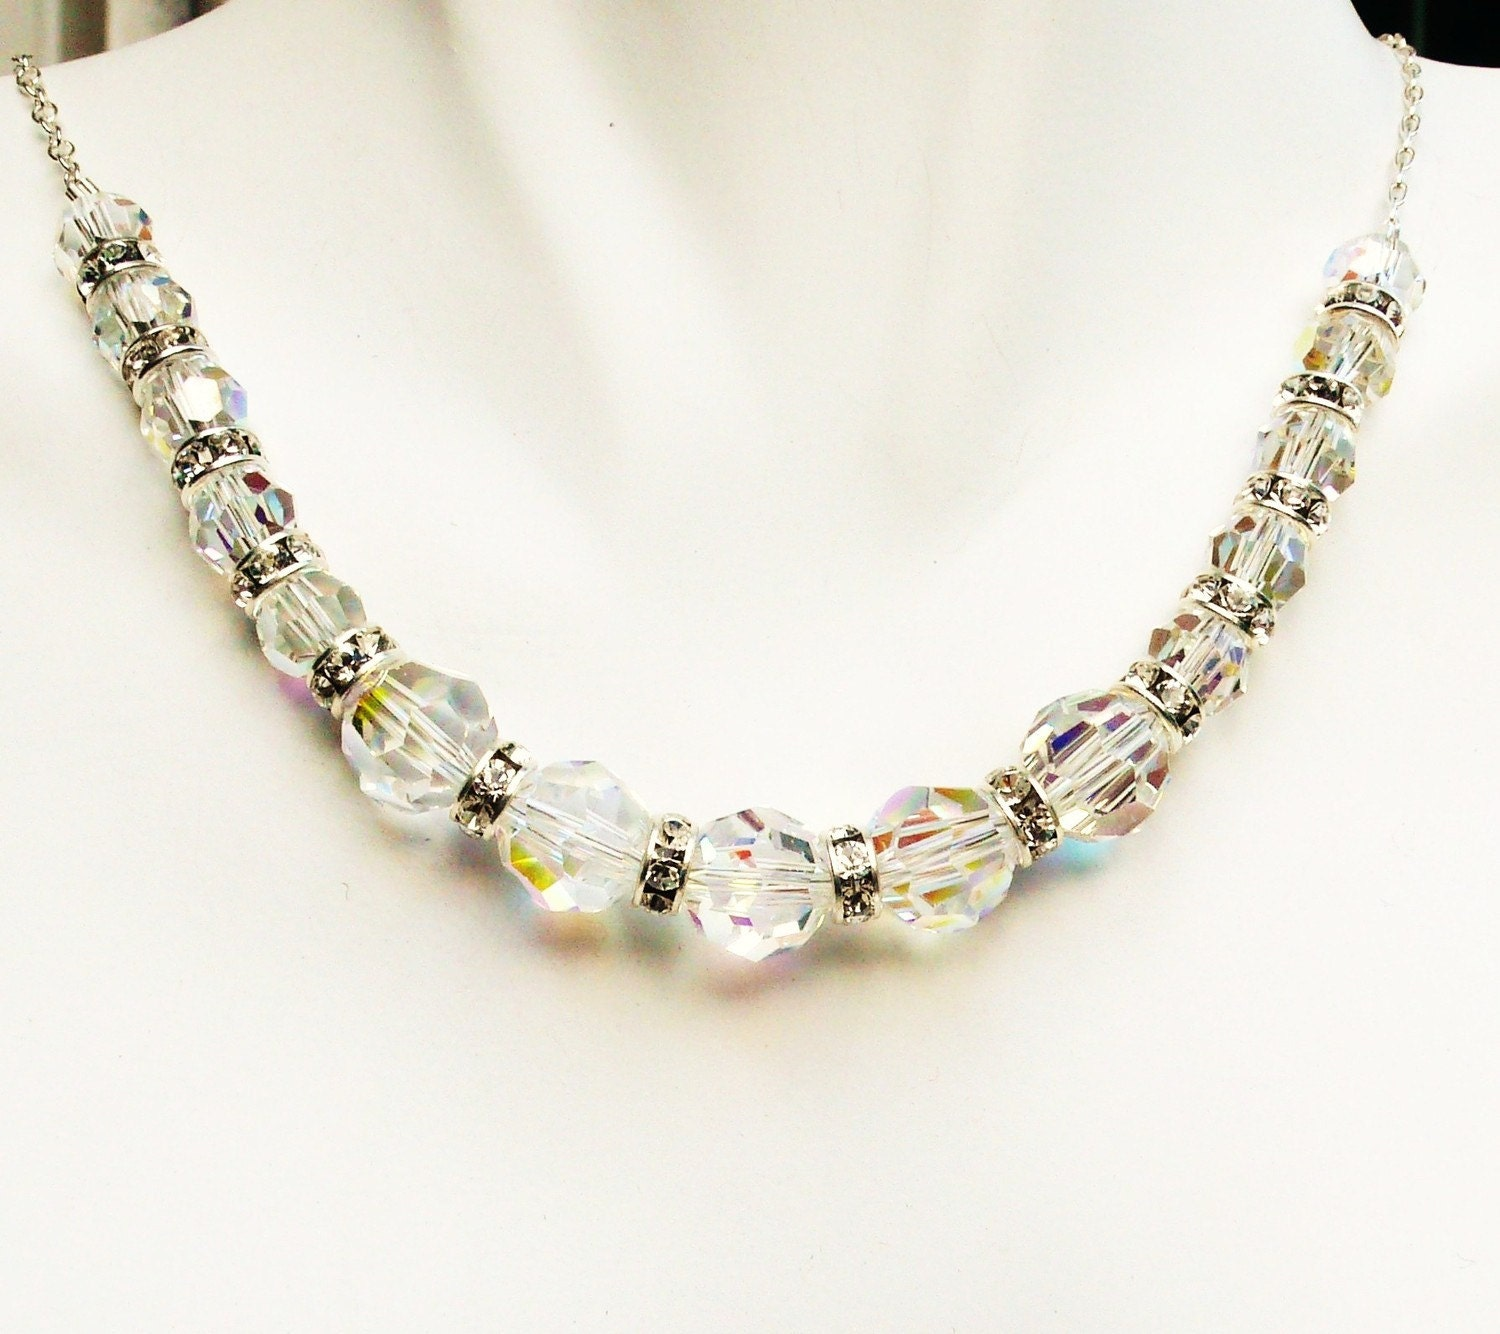 Swarovski Crystal AB and Rhinestone Necklace Sterling Silver